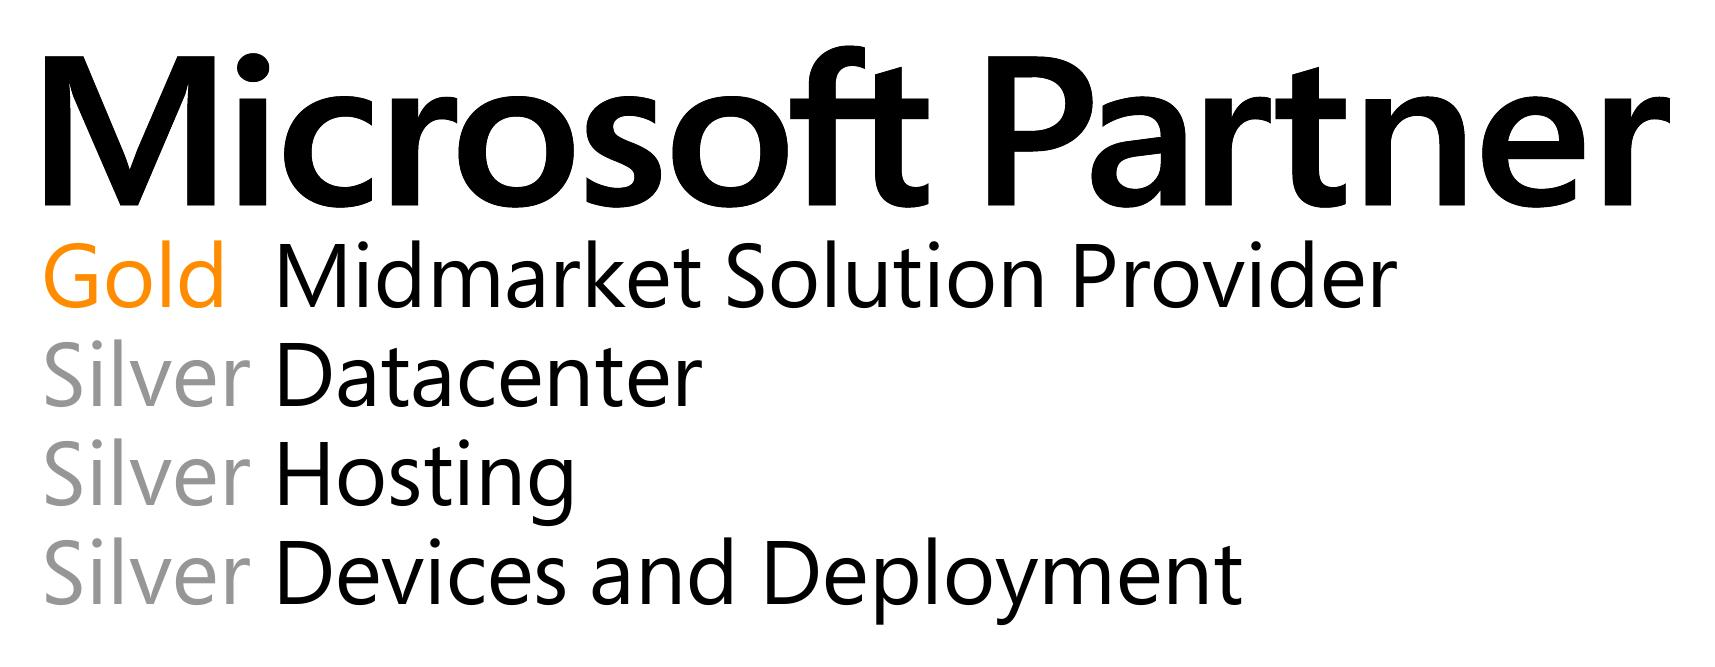 Heger IT Microsoft Gold Partner 2015 2016